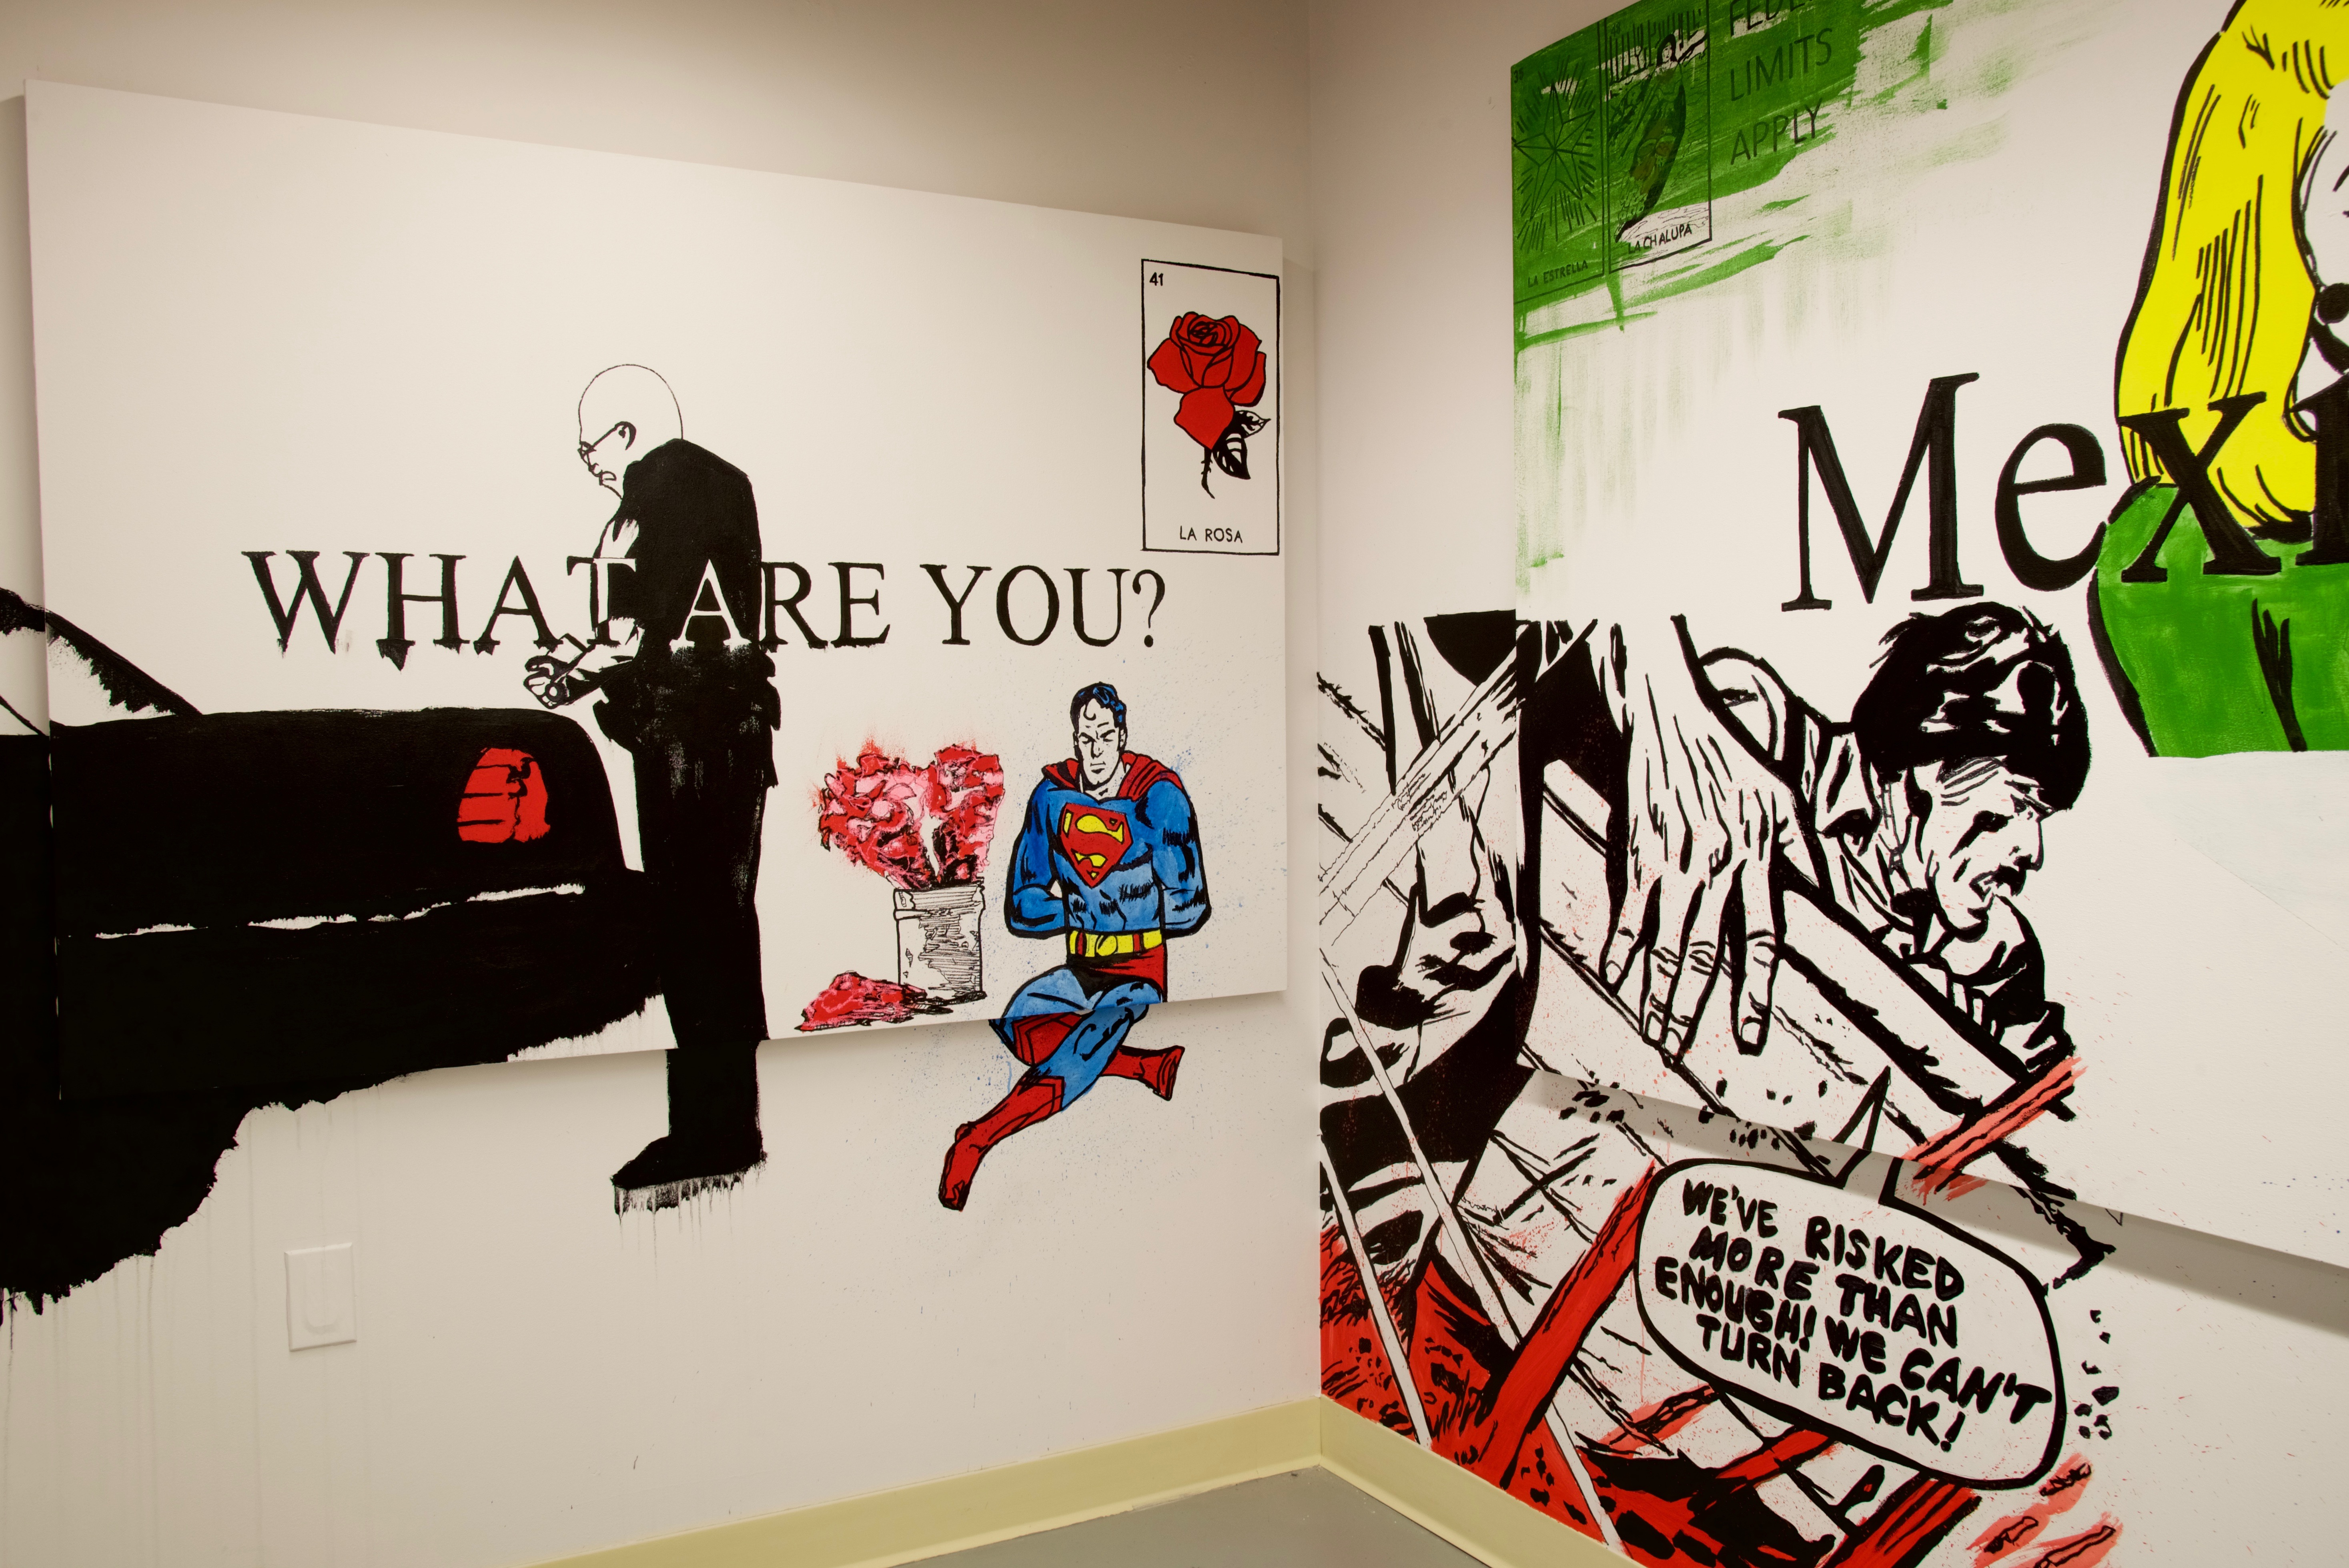 Painting titled What Are You? on left and part of artwork titled Mexican on right